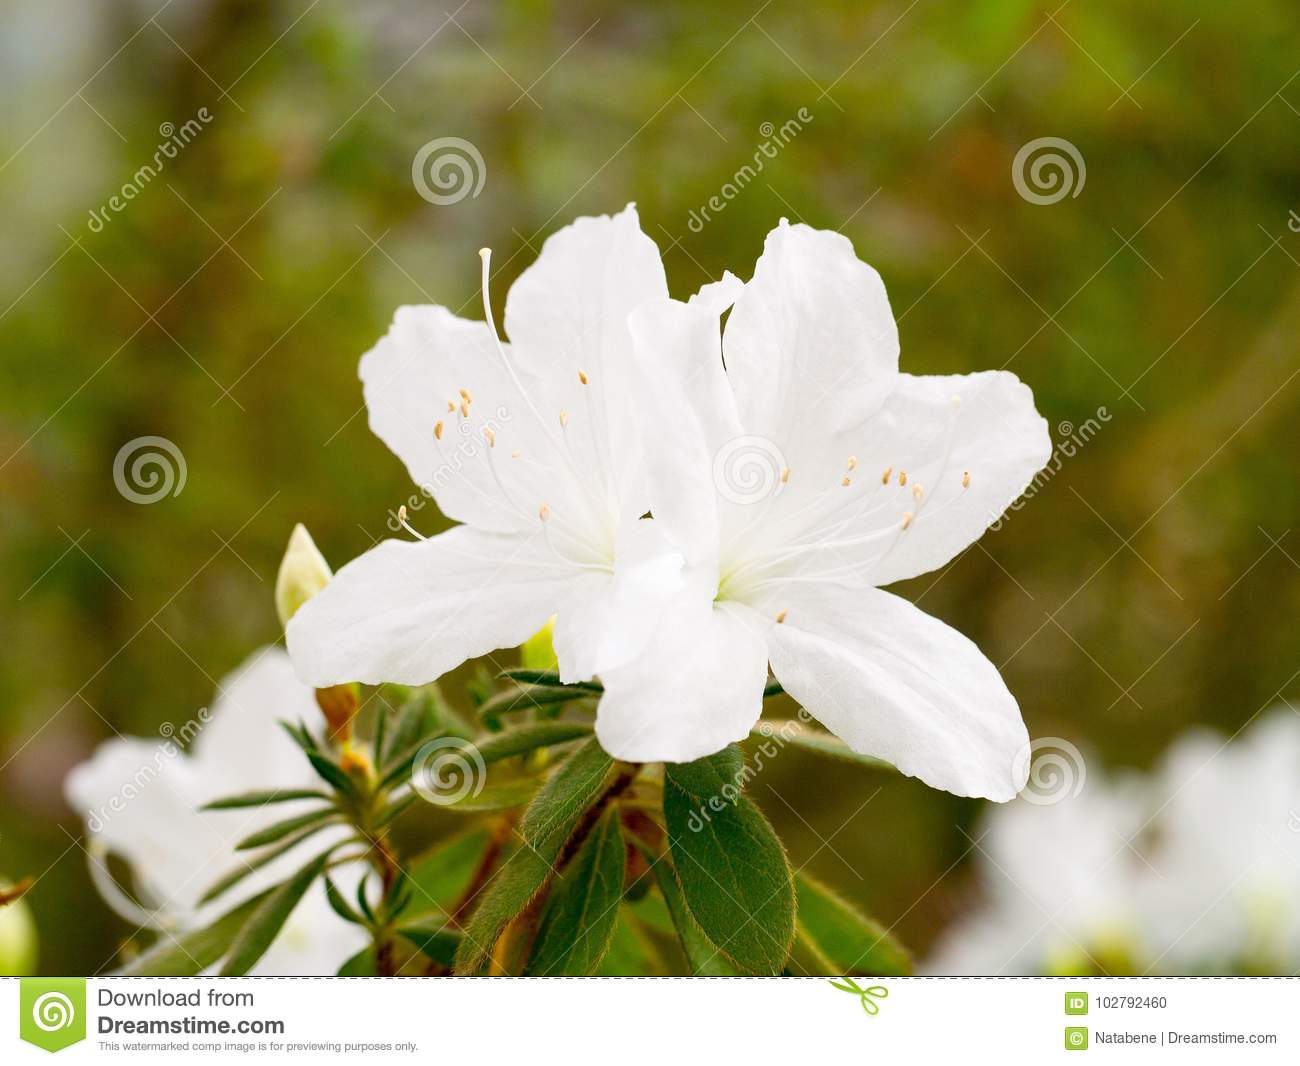 Inflorescence A Lovely White Flower Of A Rhododendron Stock Photo